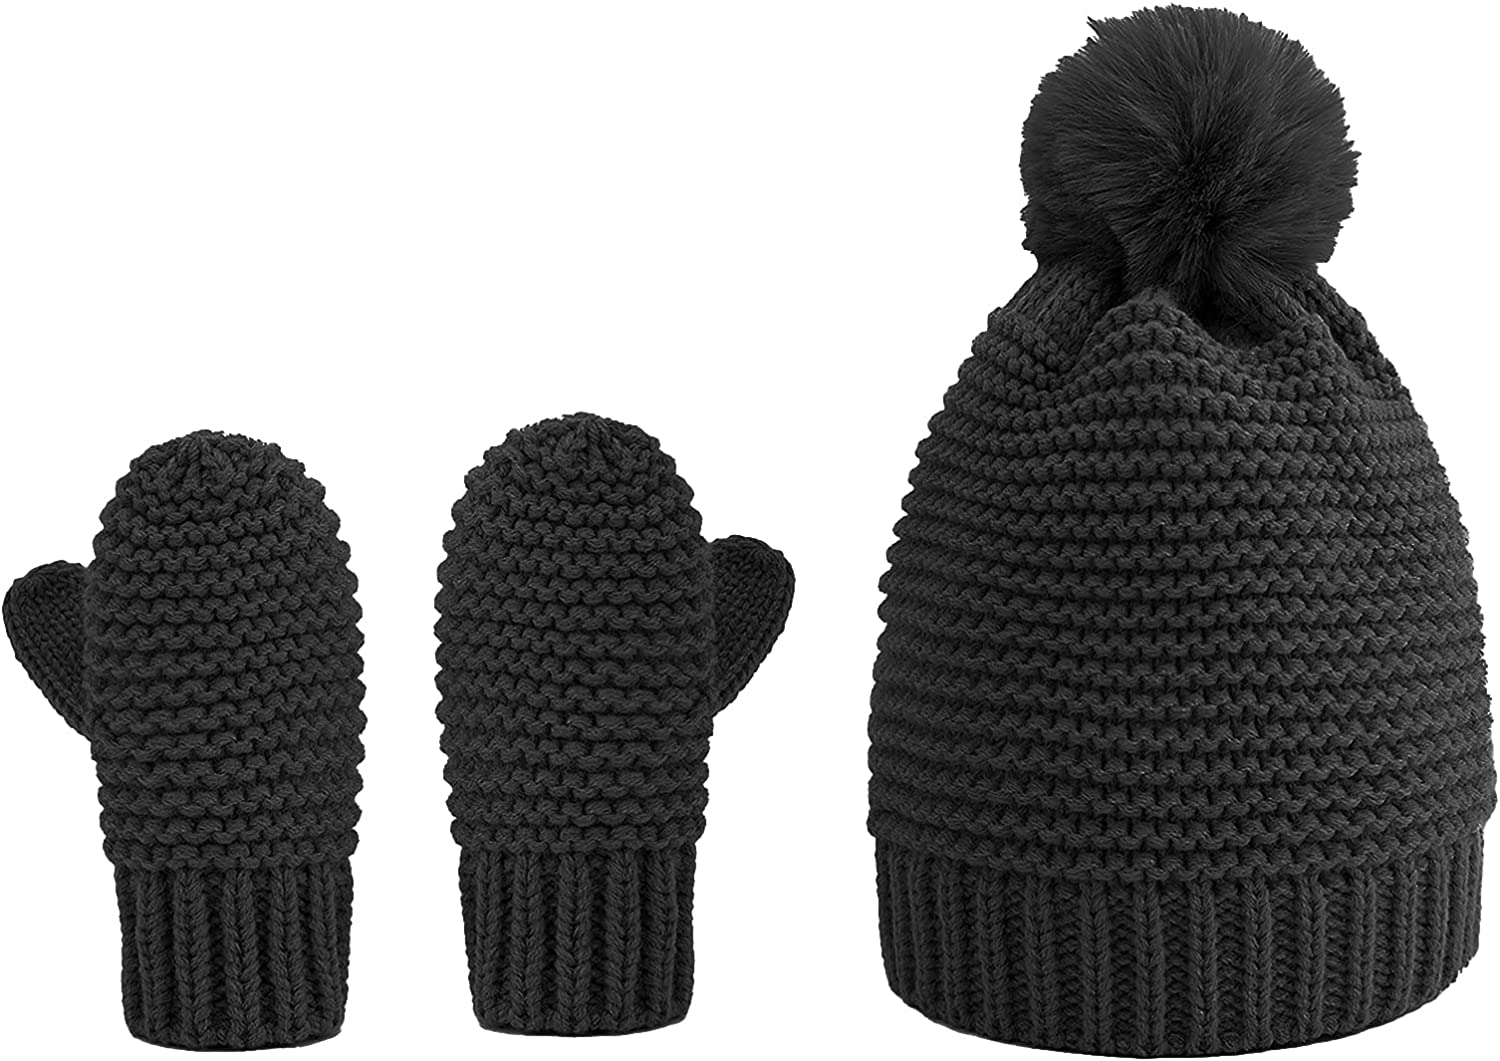 NCONCO latest 2 Ranking TOP17 PCS Toddler Baby Knit Beanie Scarf Winter Warm Hat Cap